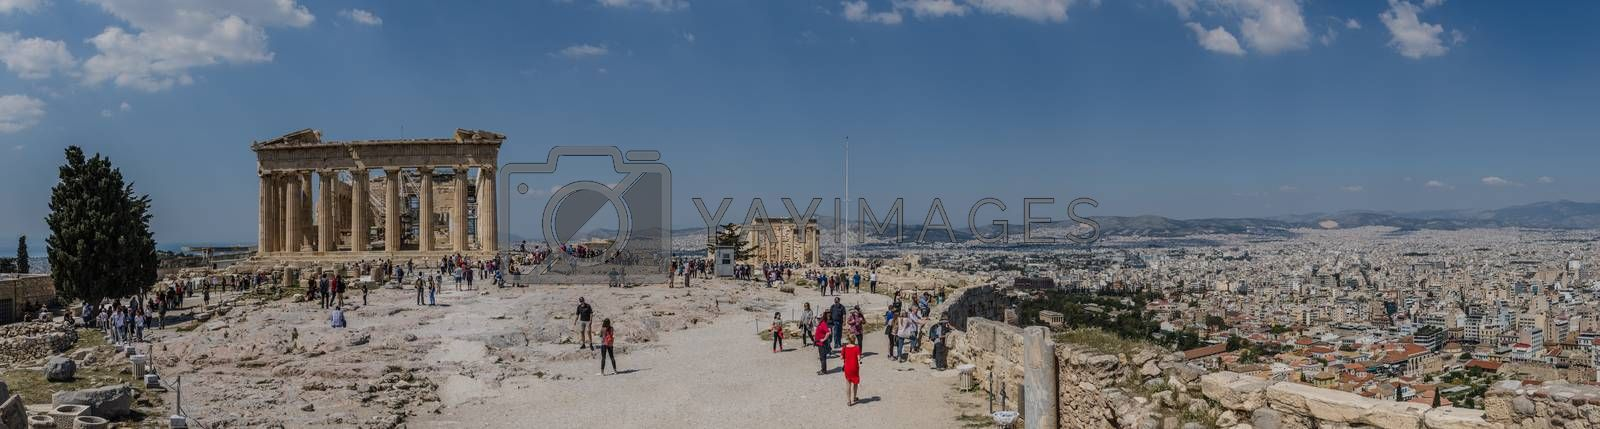 acropolis point of interest in athens panorama view